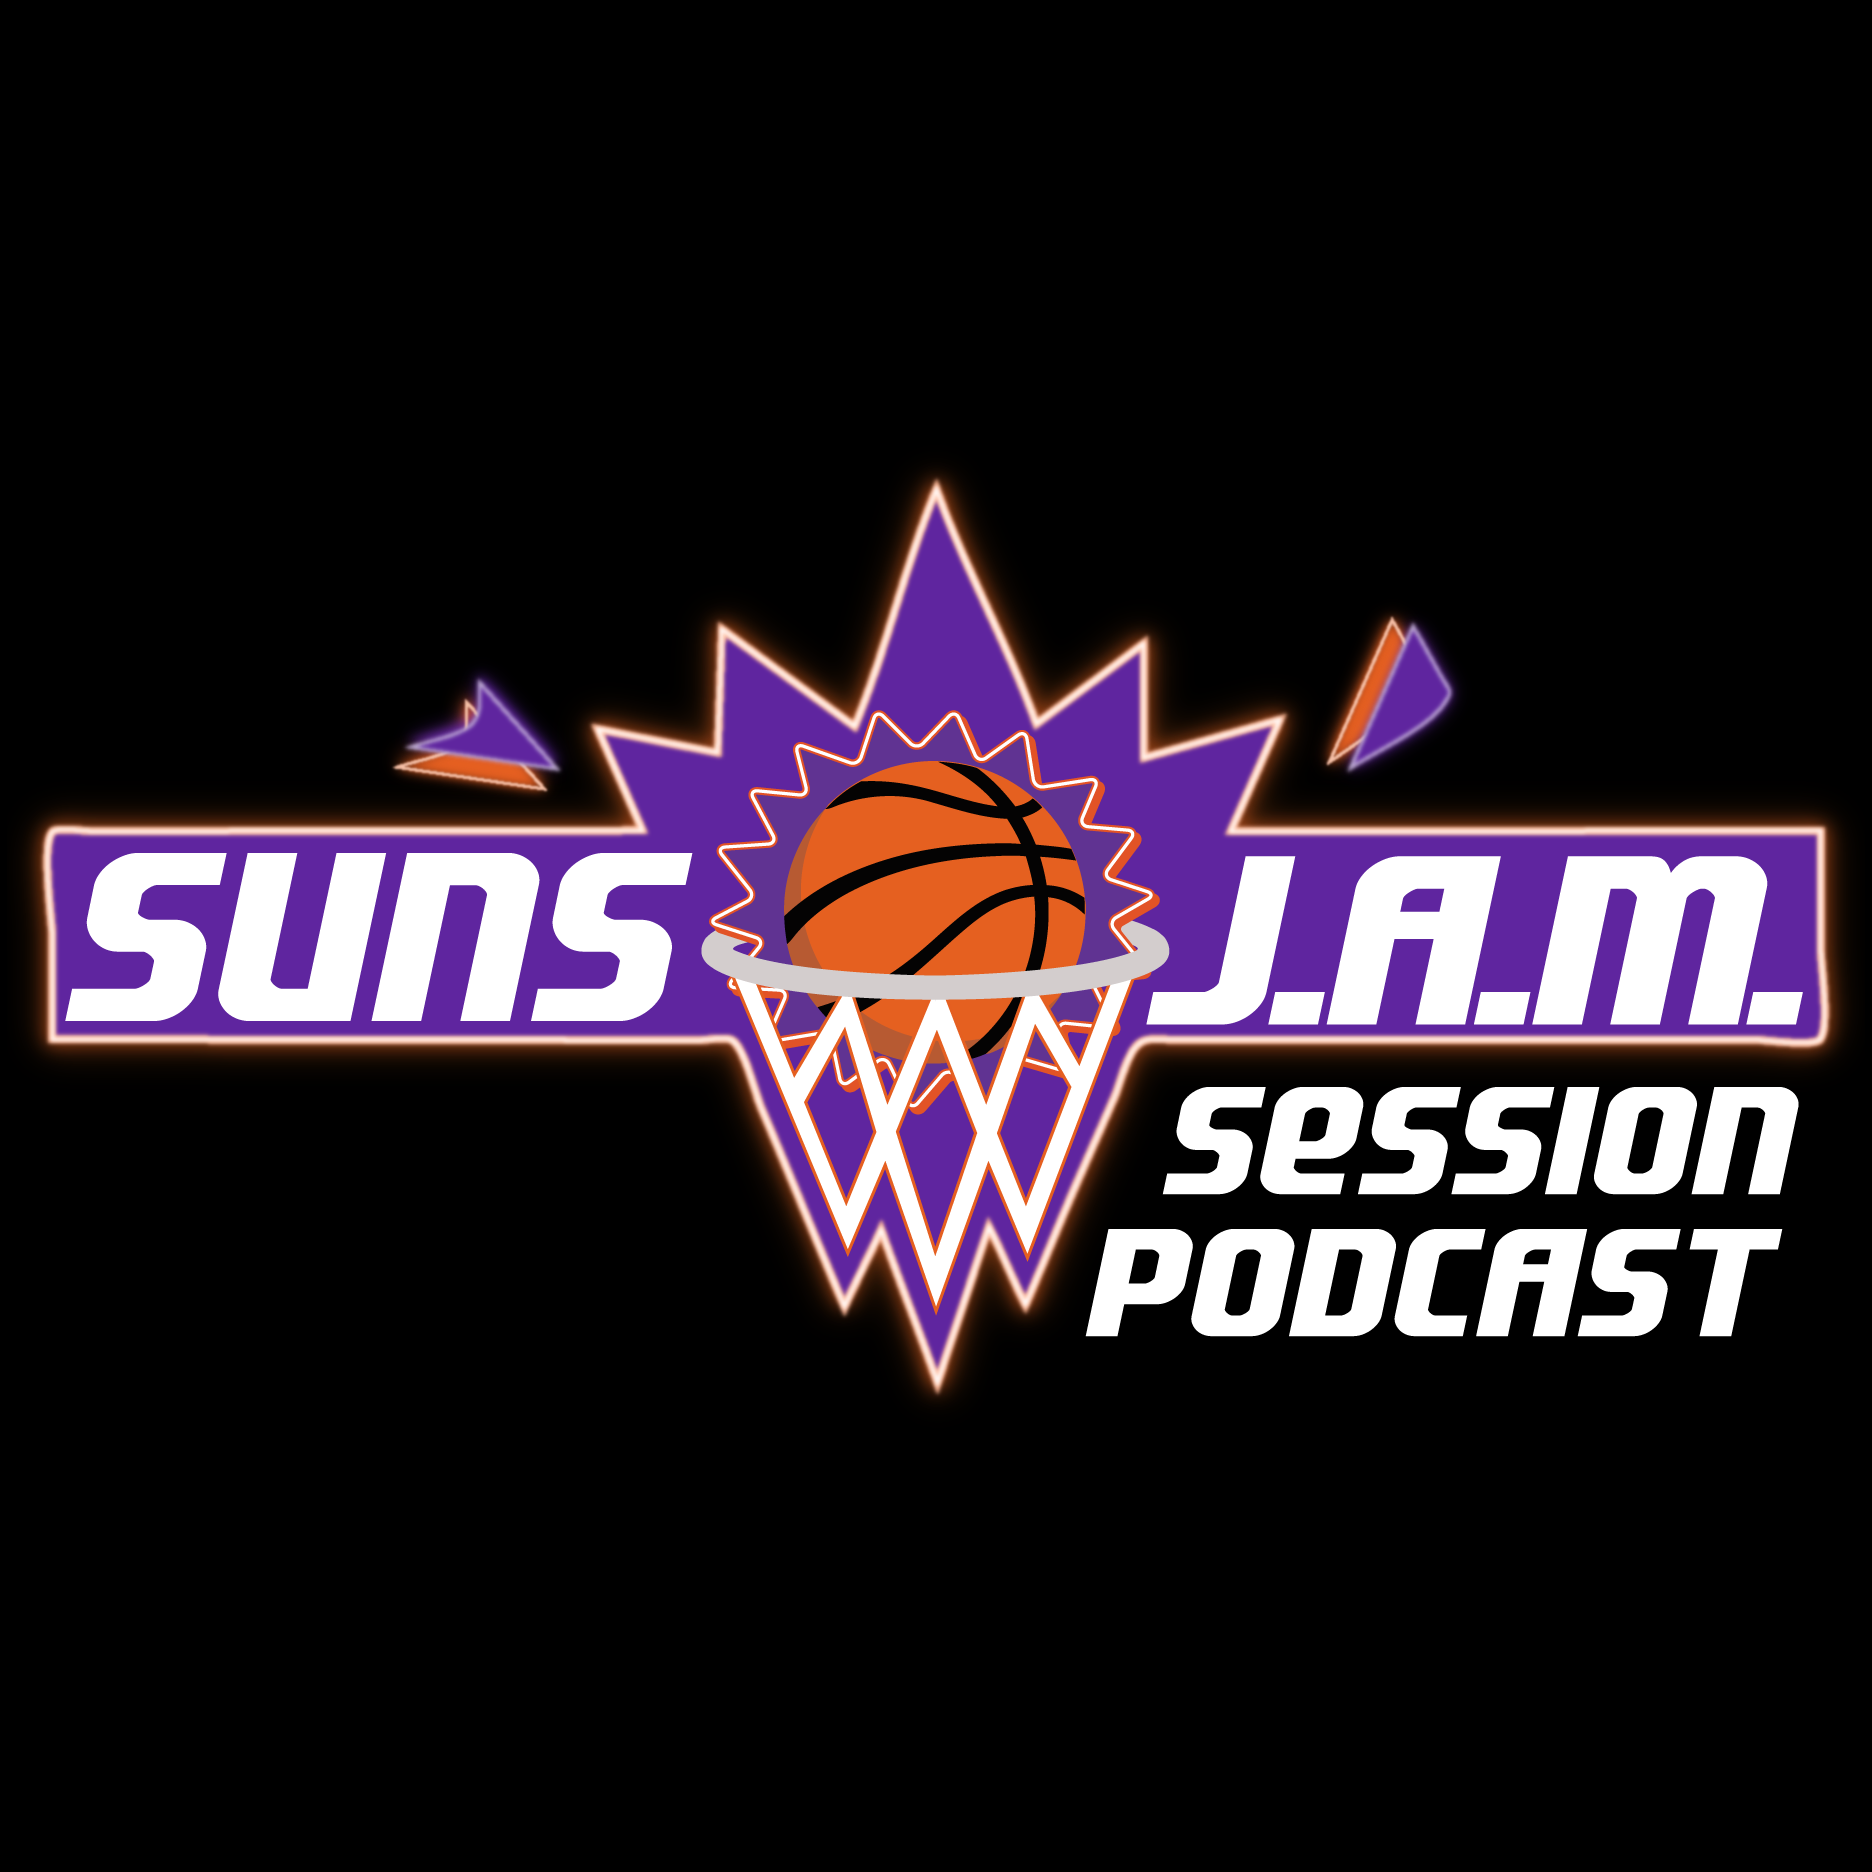 Suns JAM Session Podcast: The Last Dance Discussion (Ep. 9 & 10)